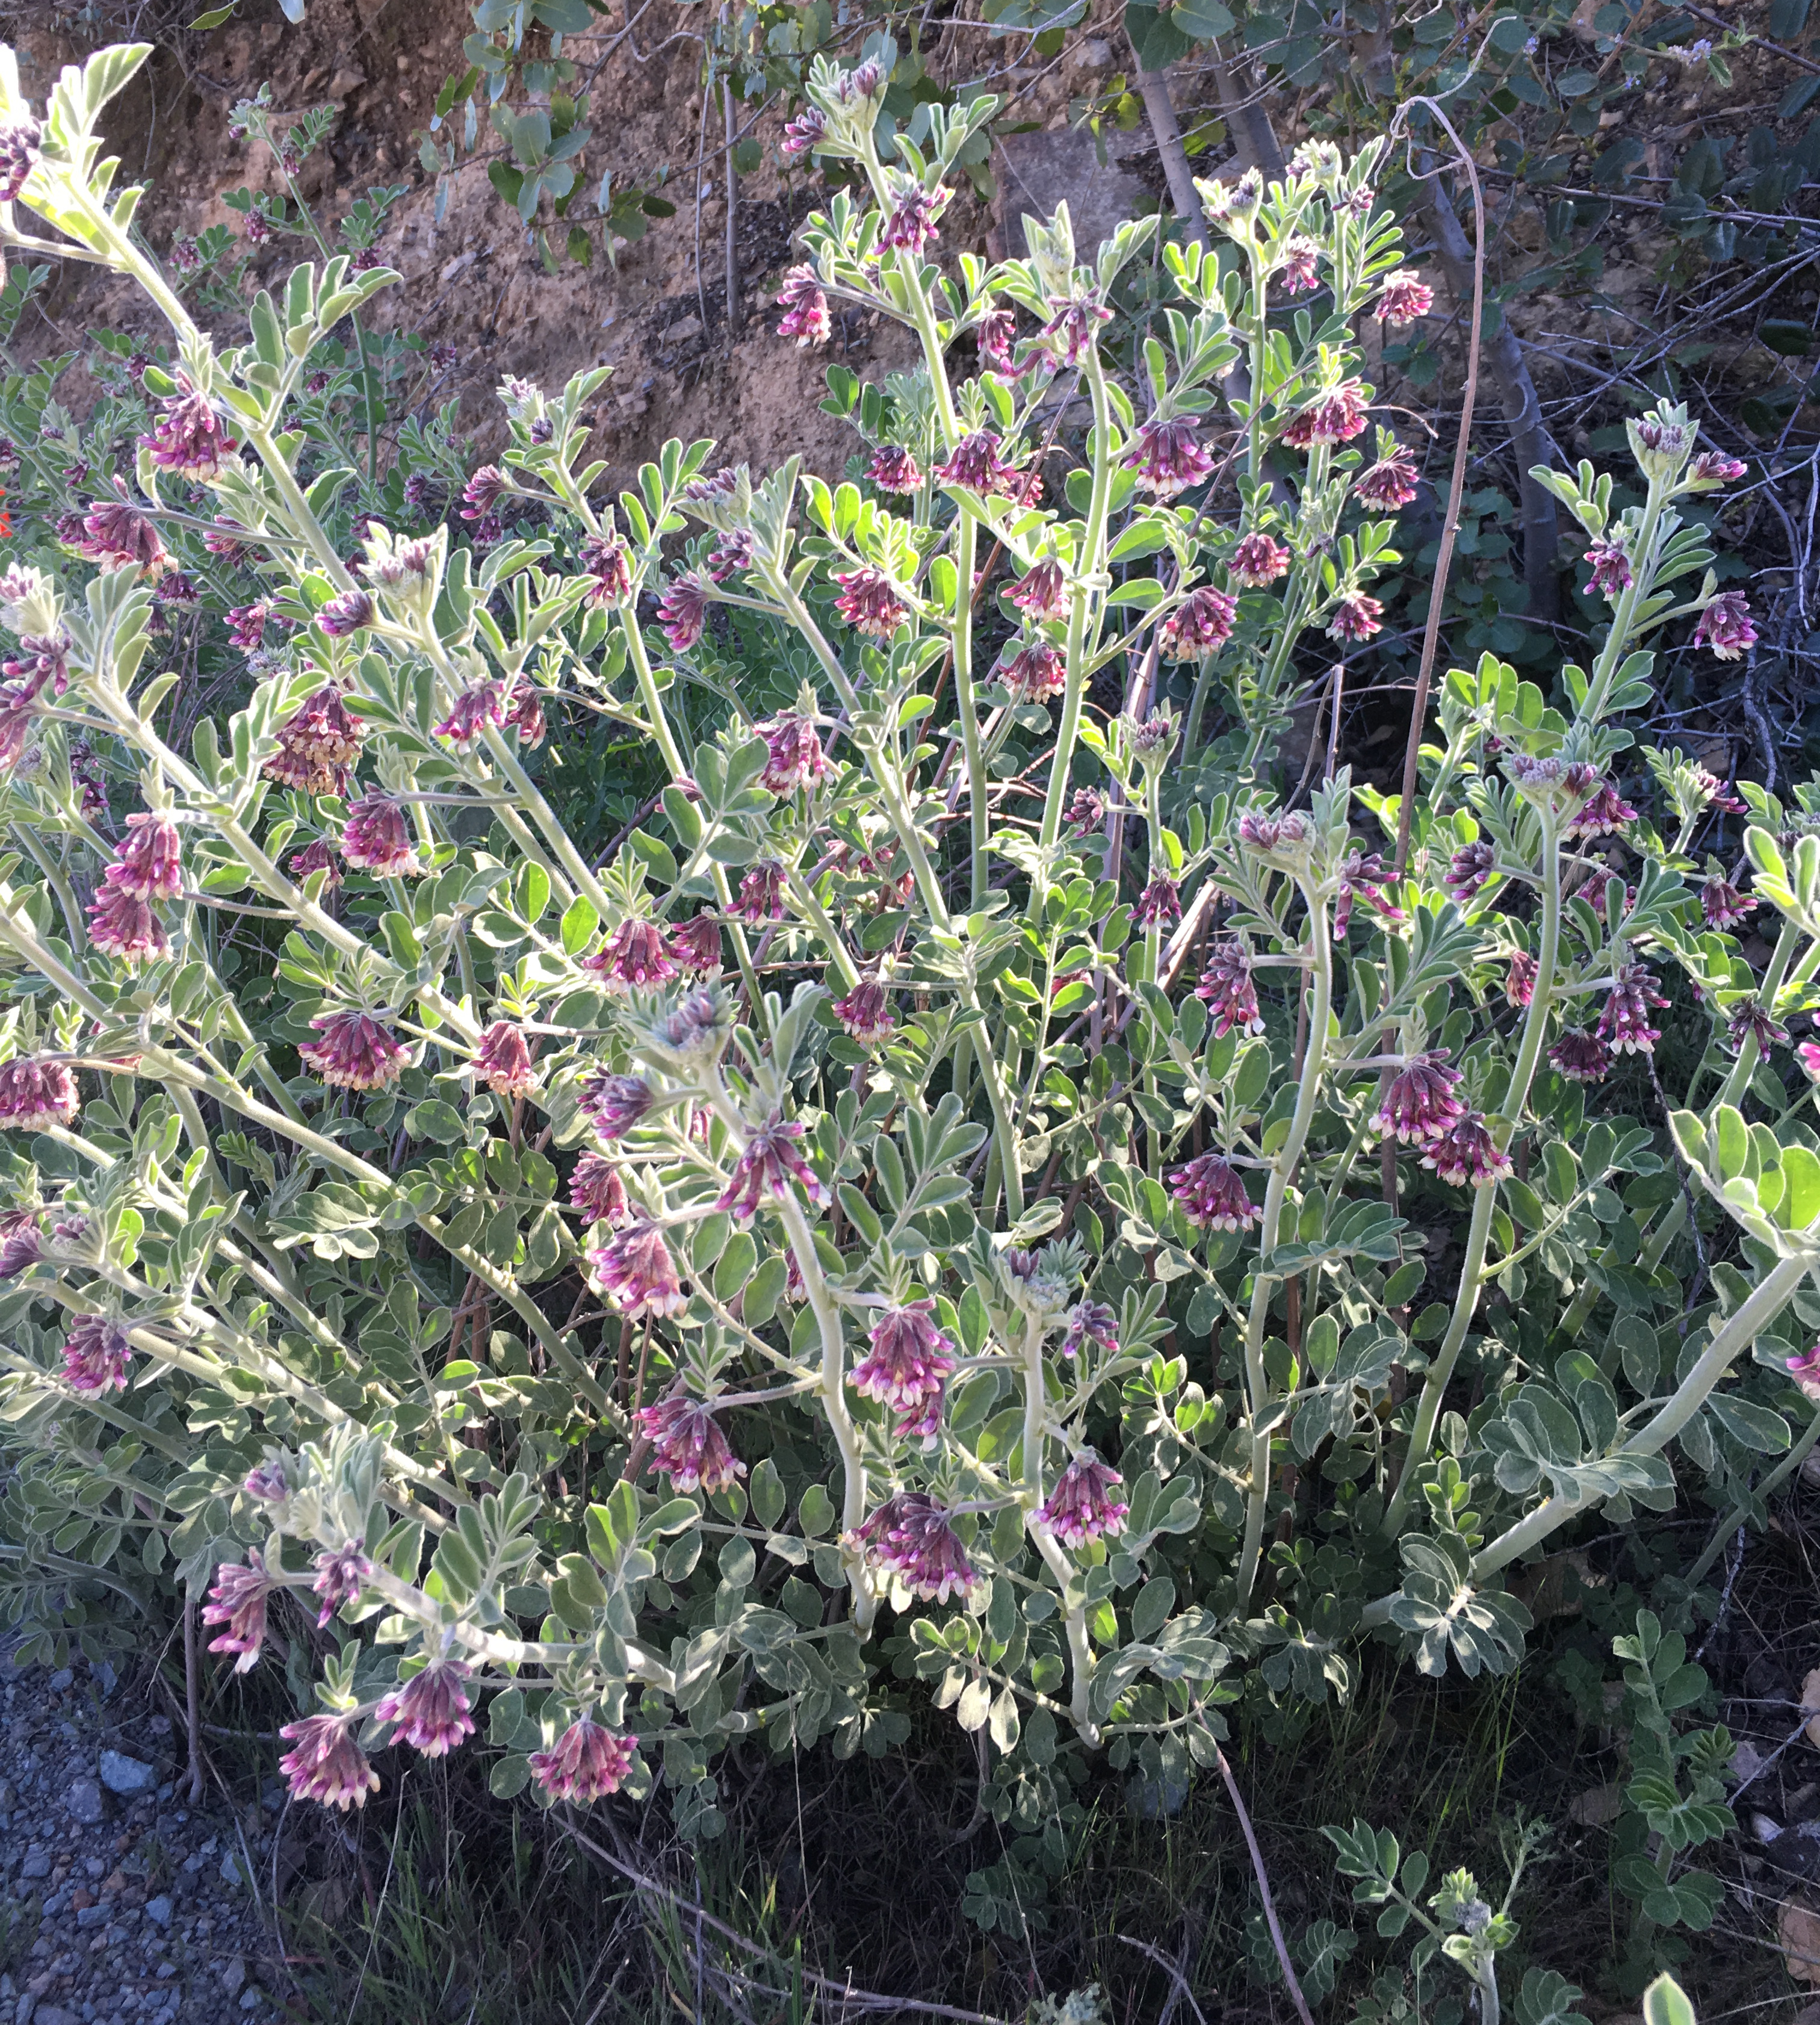 Otay Mountain lotus is a beautiful plant in the pea family. This variety is found in only a few places on the planet.